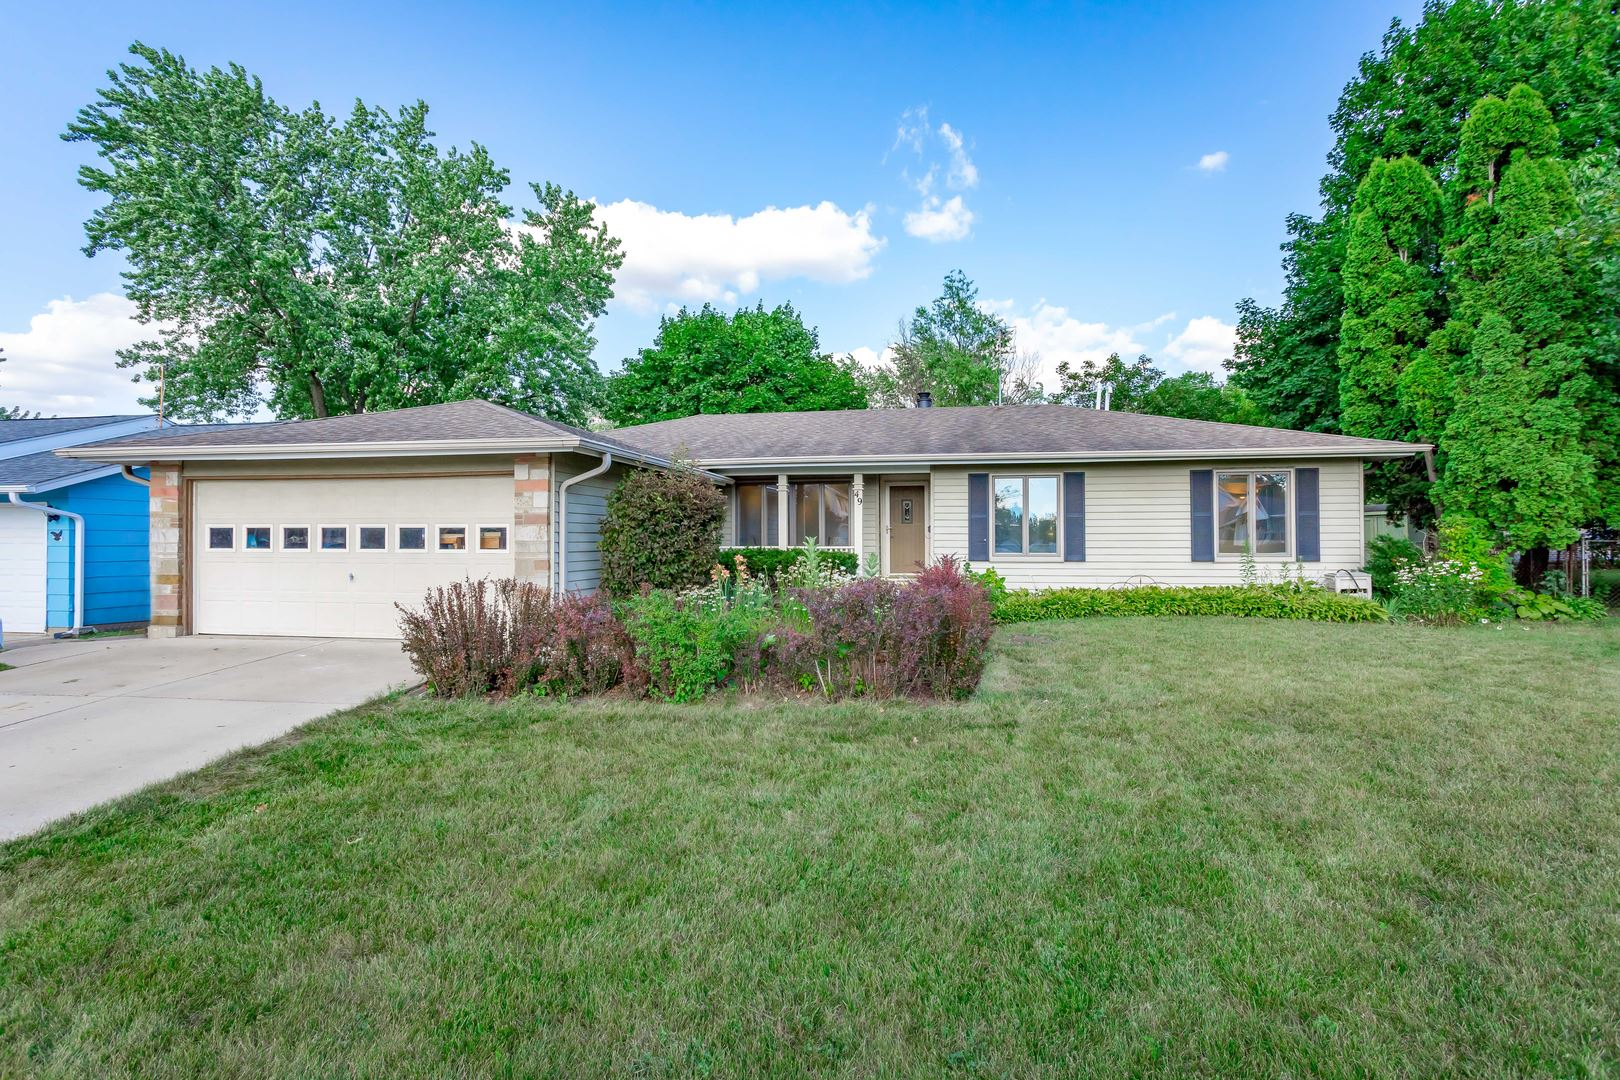 49 Smethwick Lane, Elk Grove Village, IL 60007 - #: 10815969